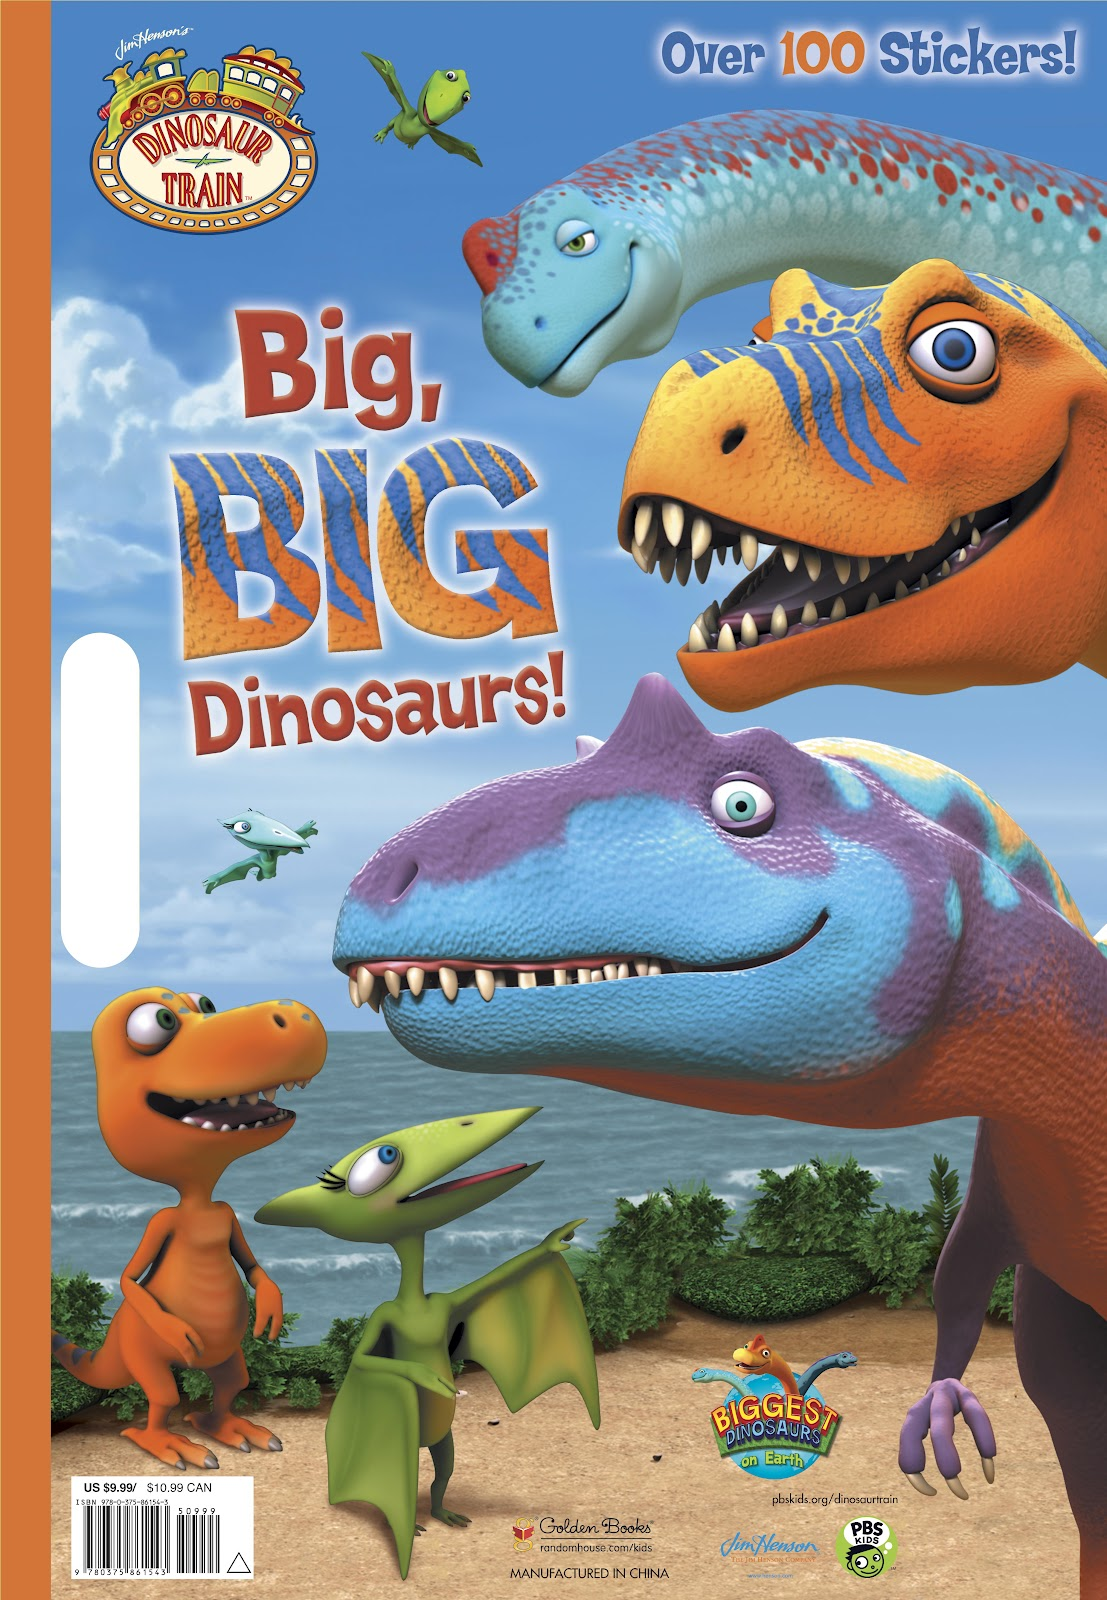 dinosaur train big big dinosaurs giant coloring book giveawau - Giant Coloring Book